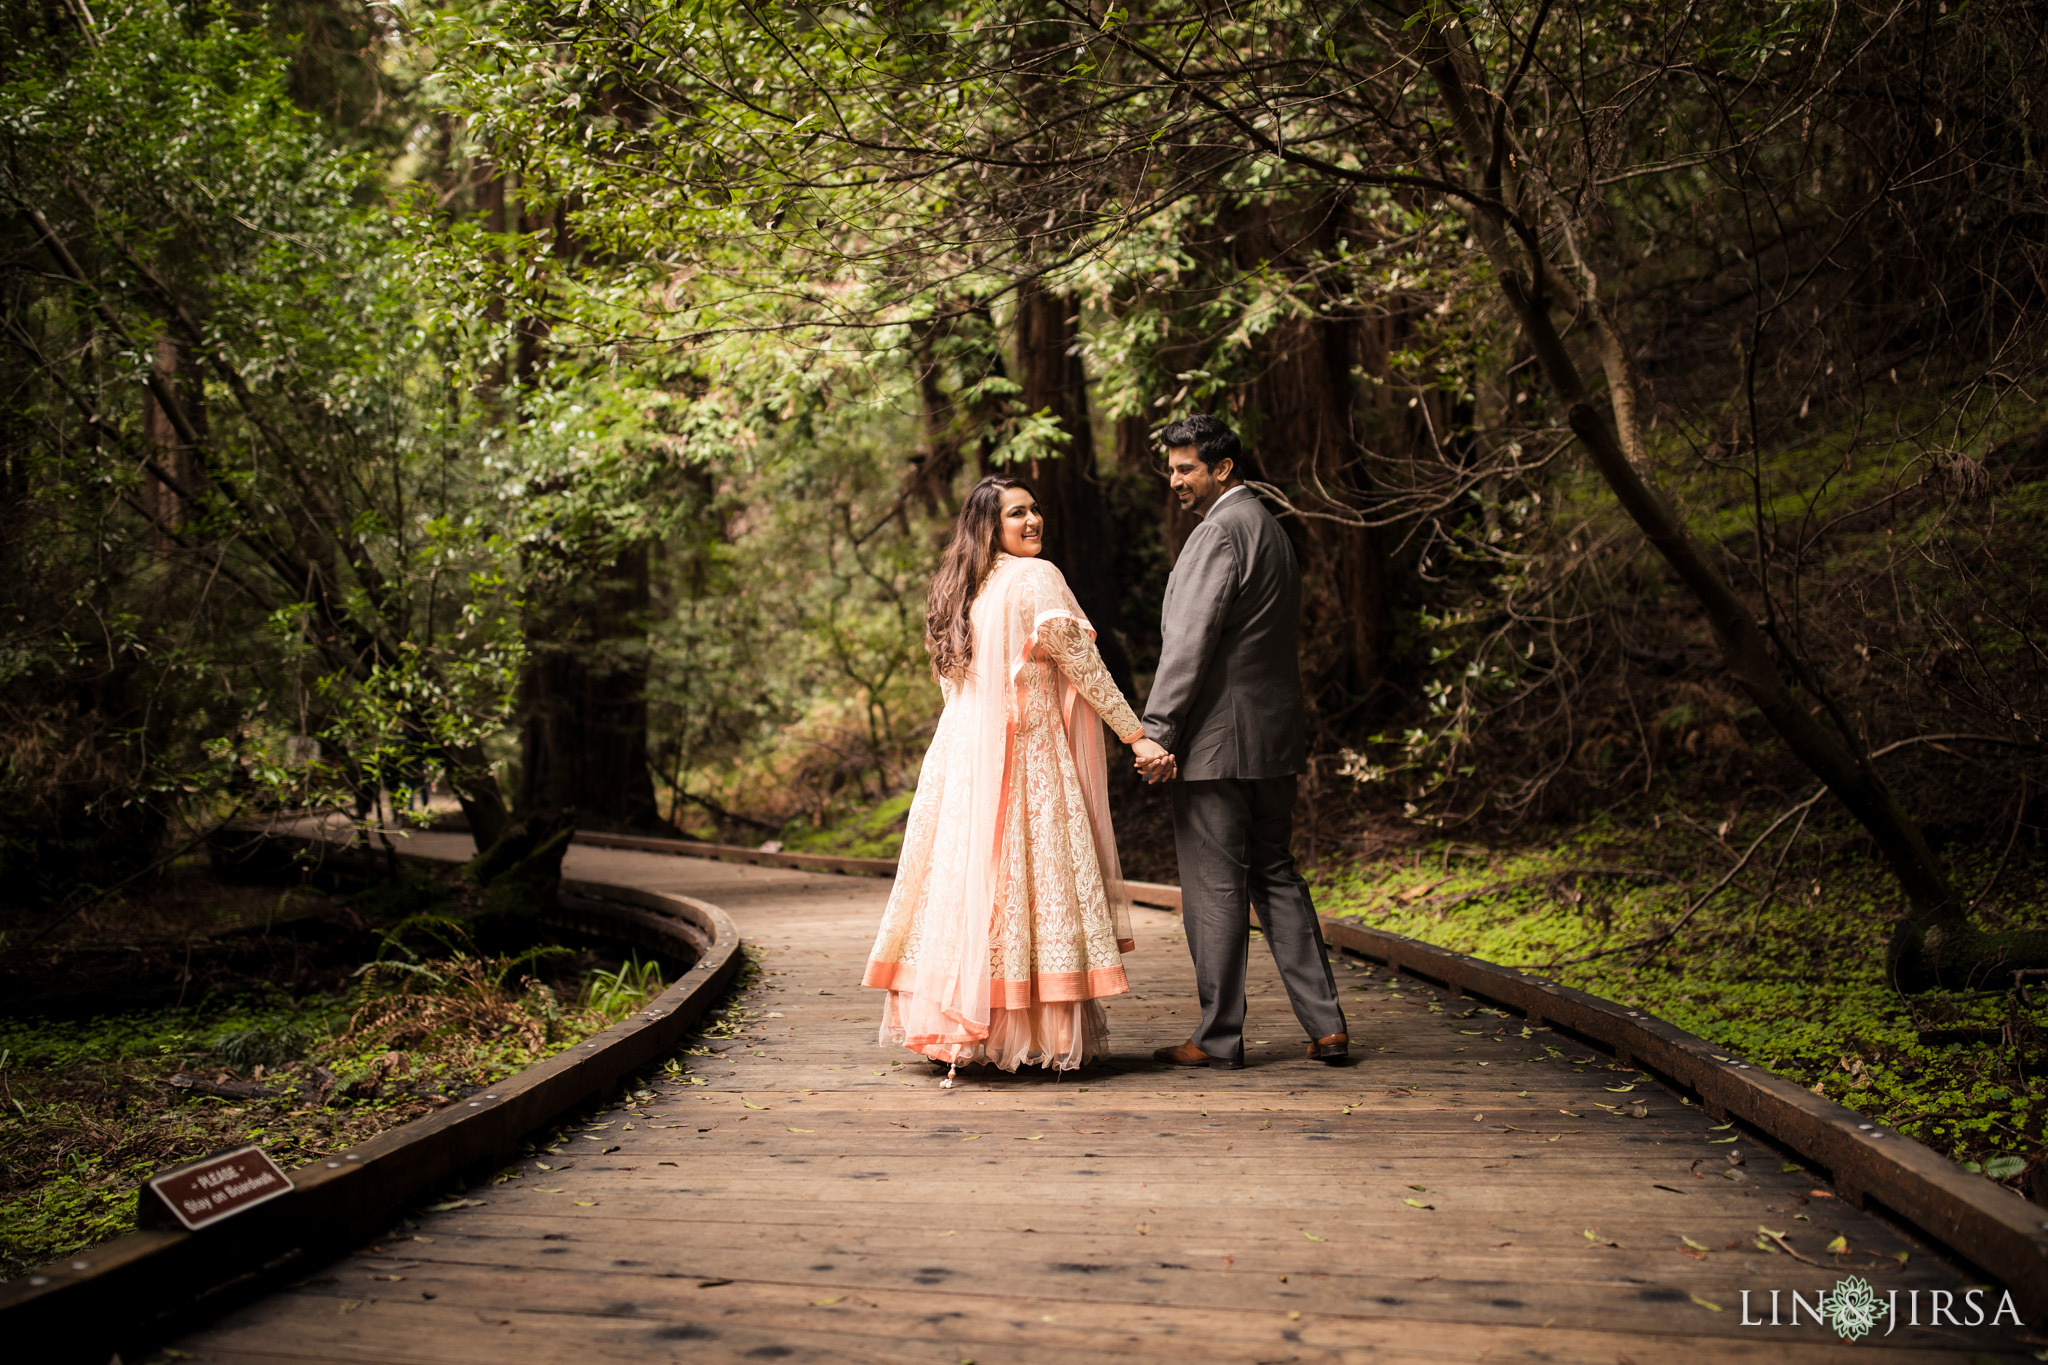 02-San-francisco-muir-woods-marin-county-engagement-photography